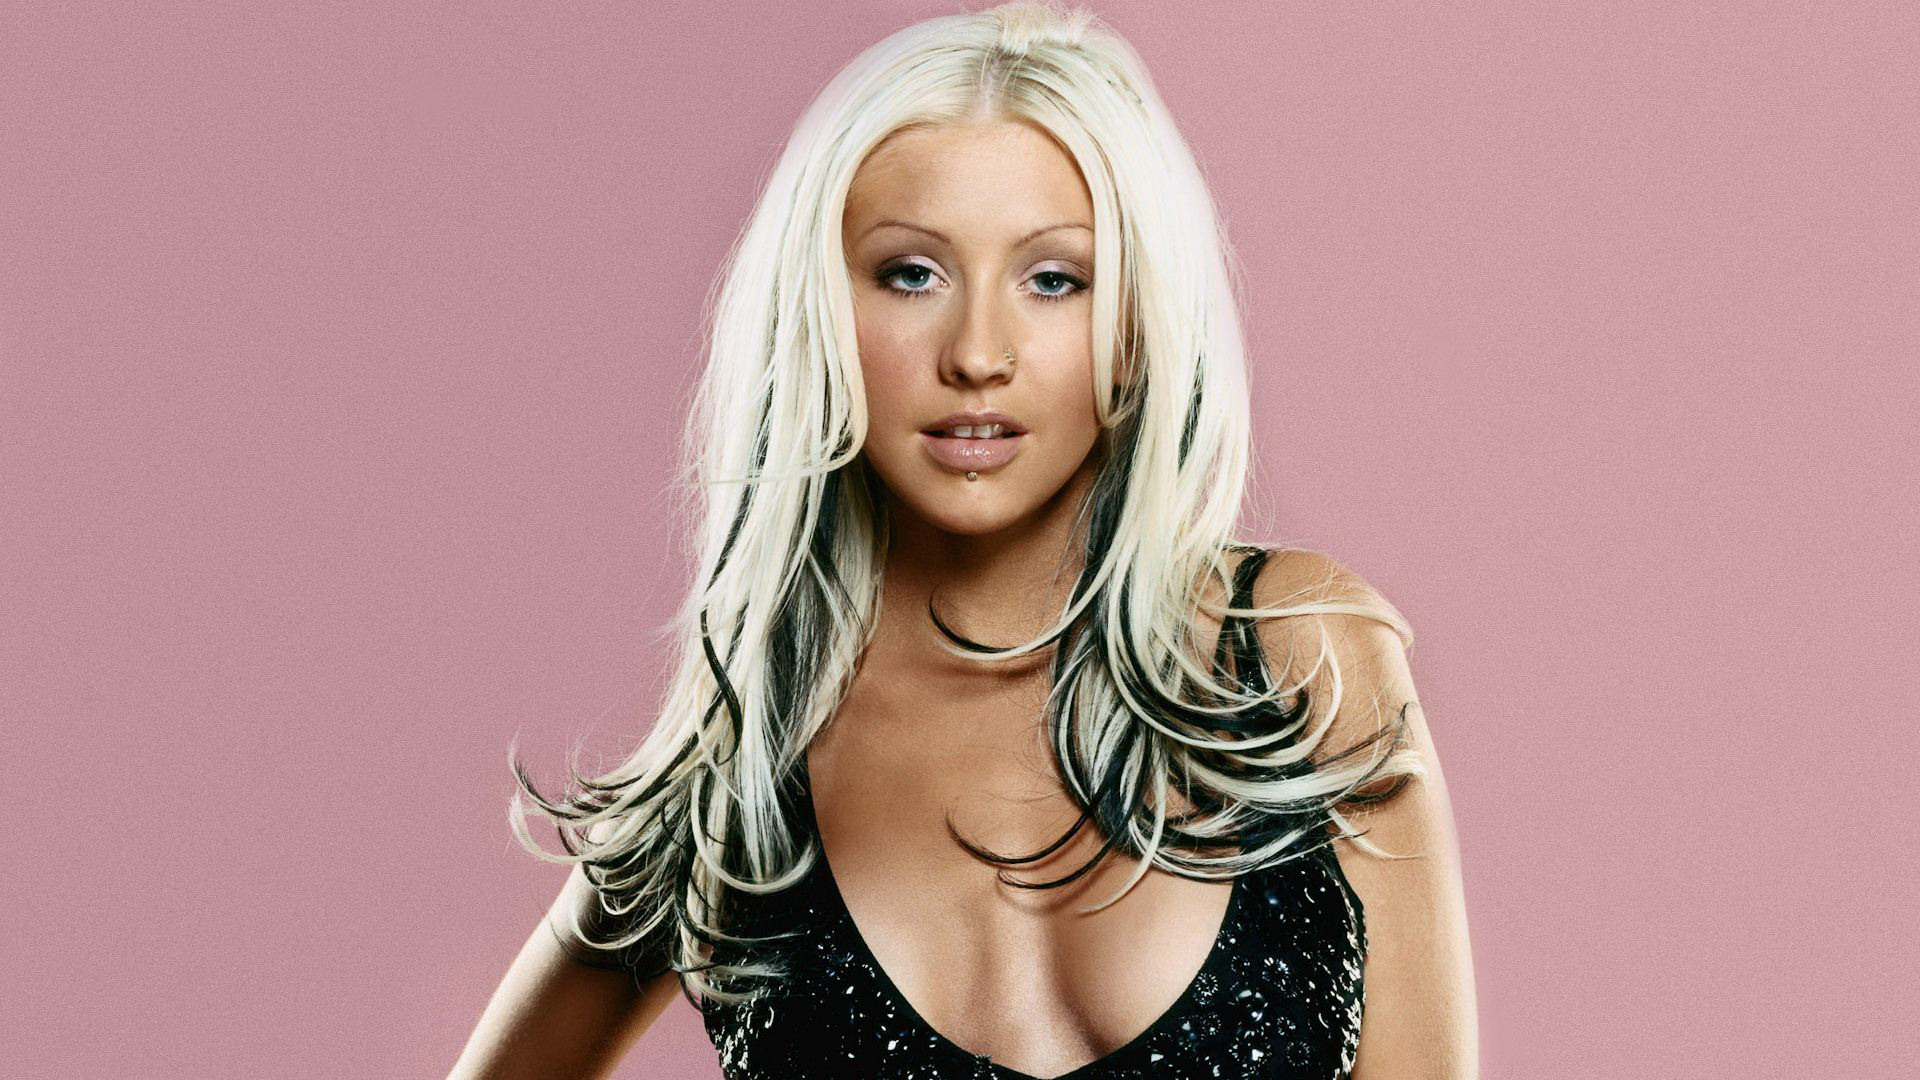 Christina Aguilera  hd wallpaper Wallpaper